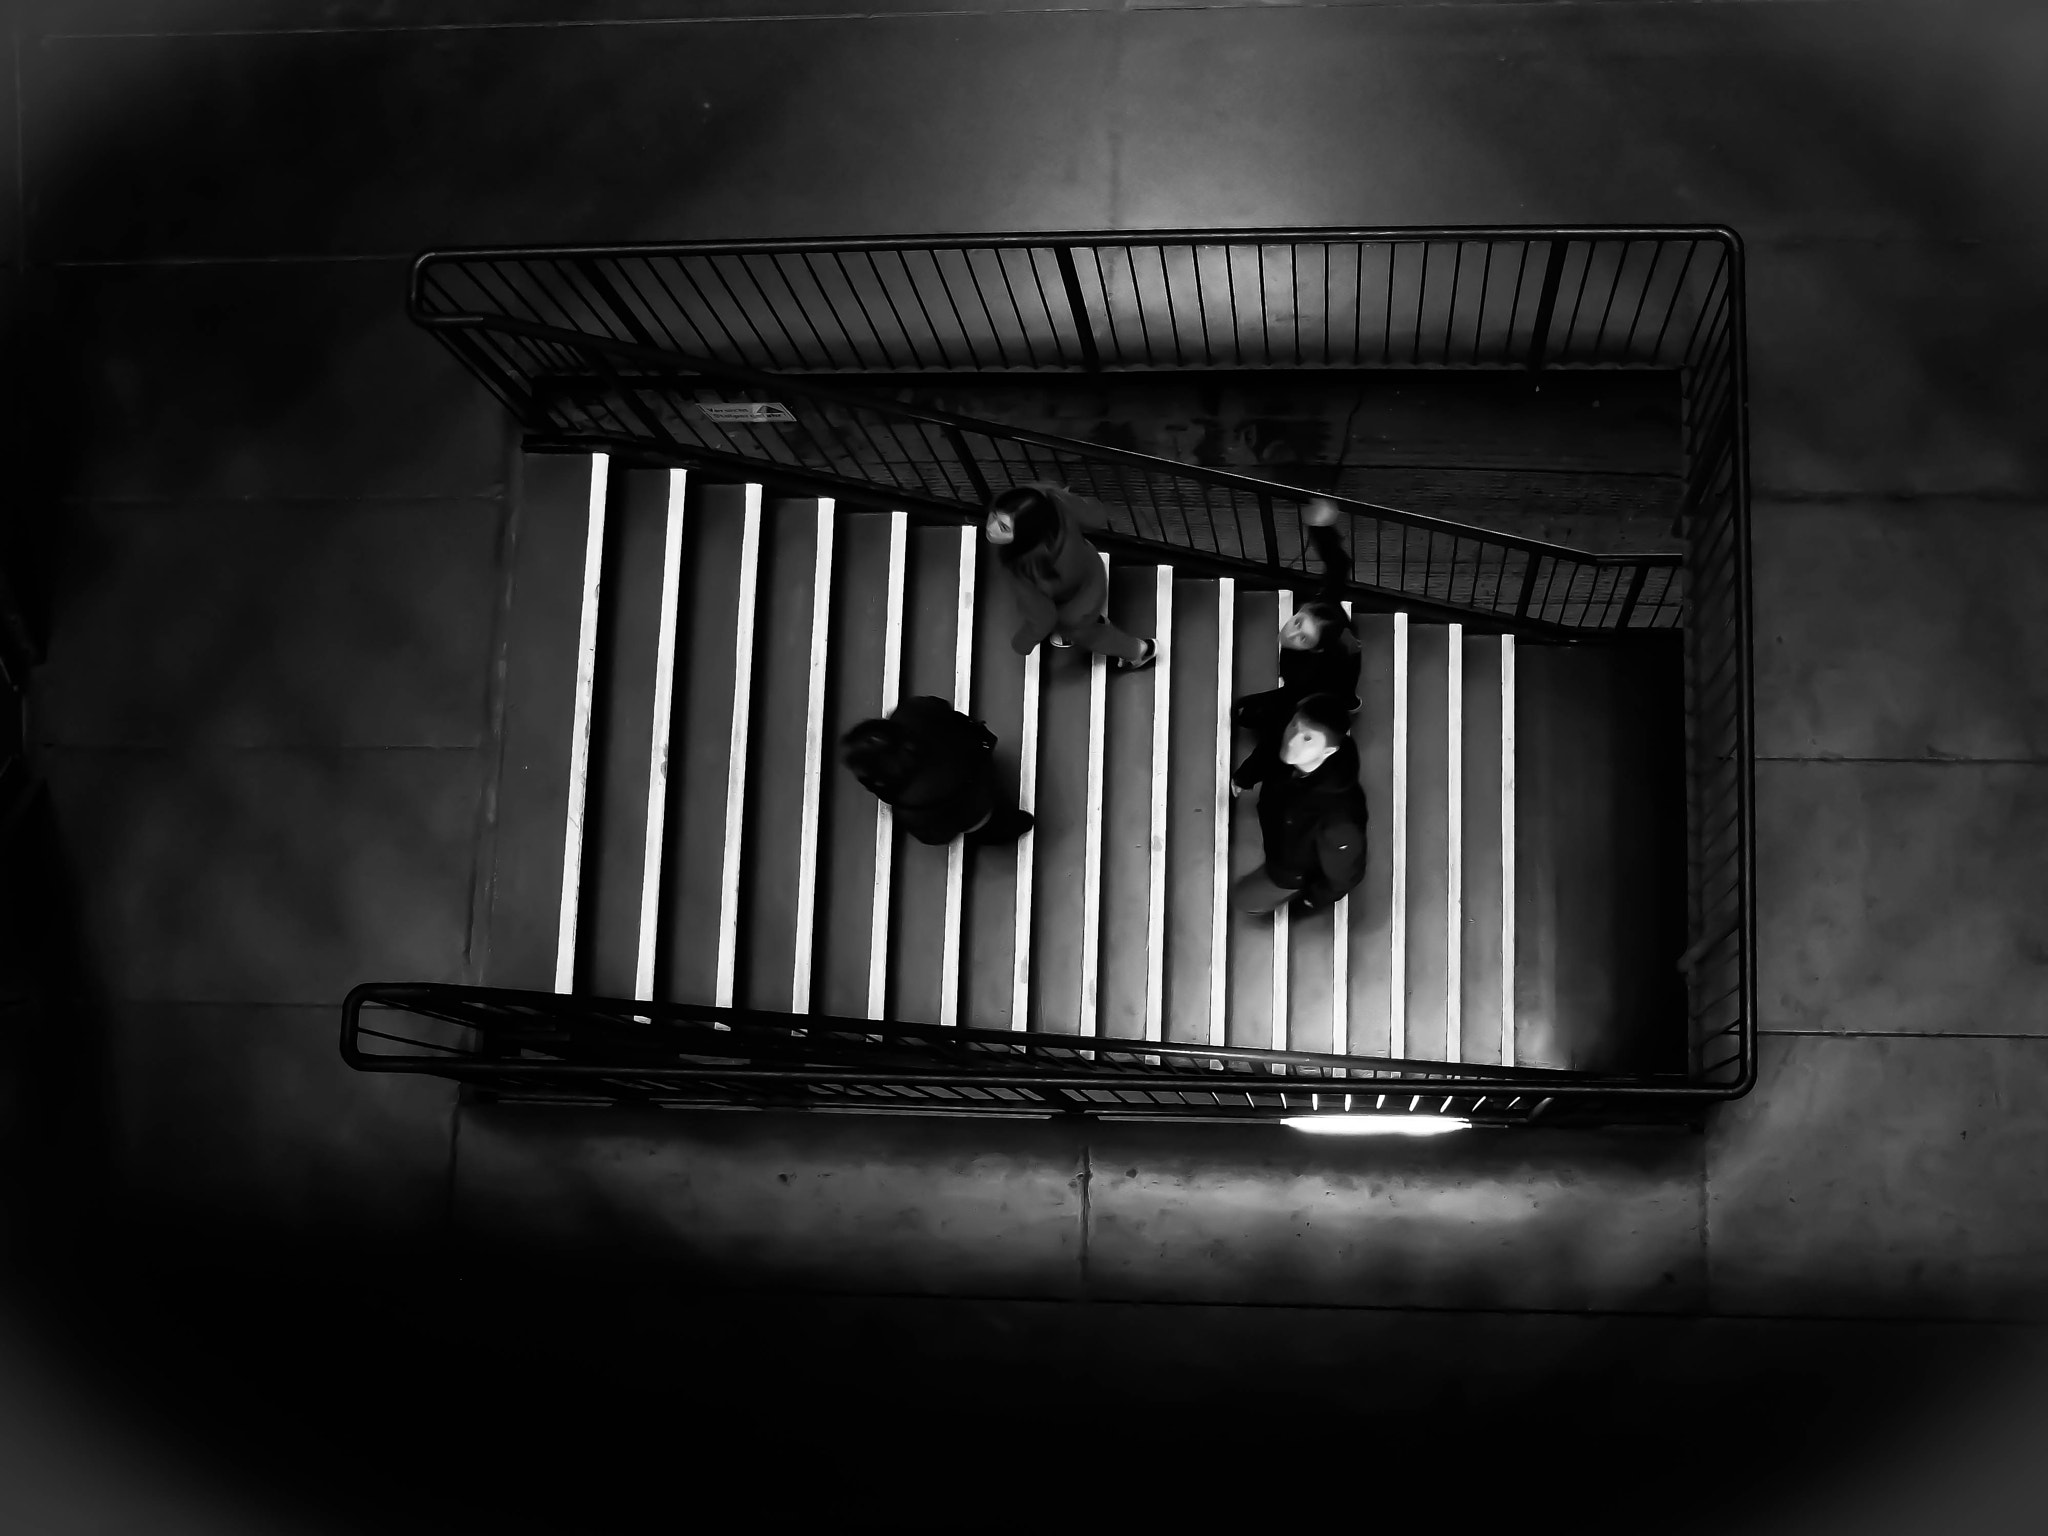 Photograph stairs up by Georgie Pauwels on 500px